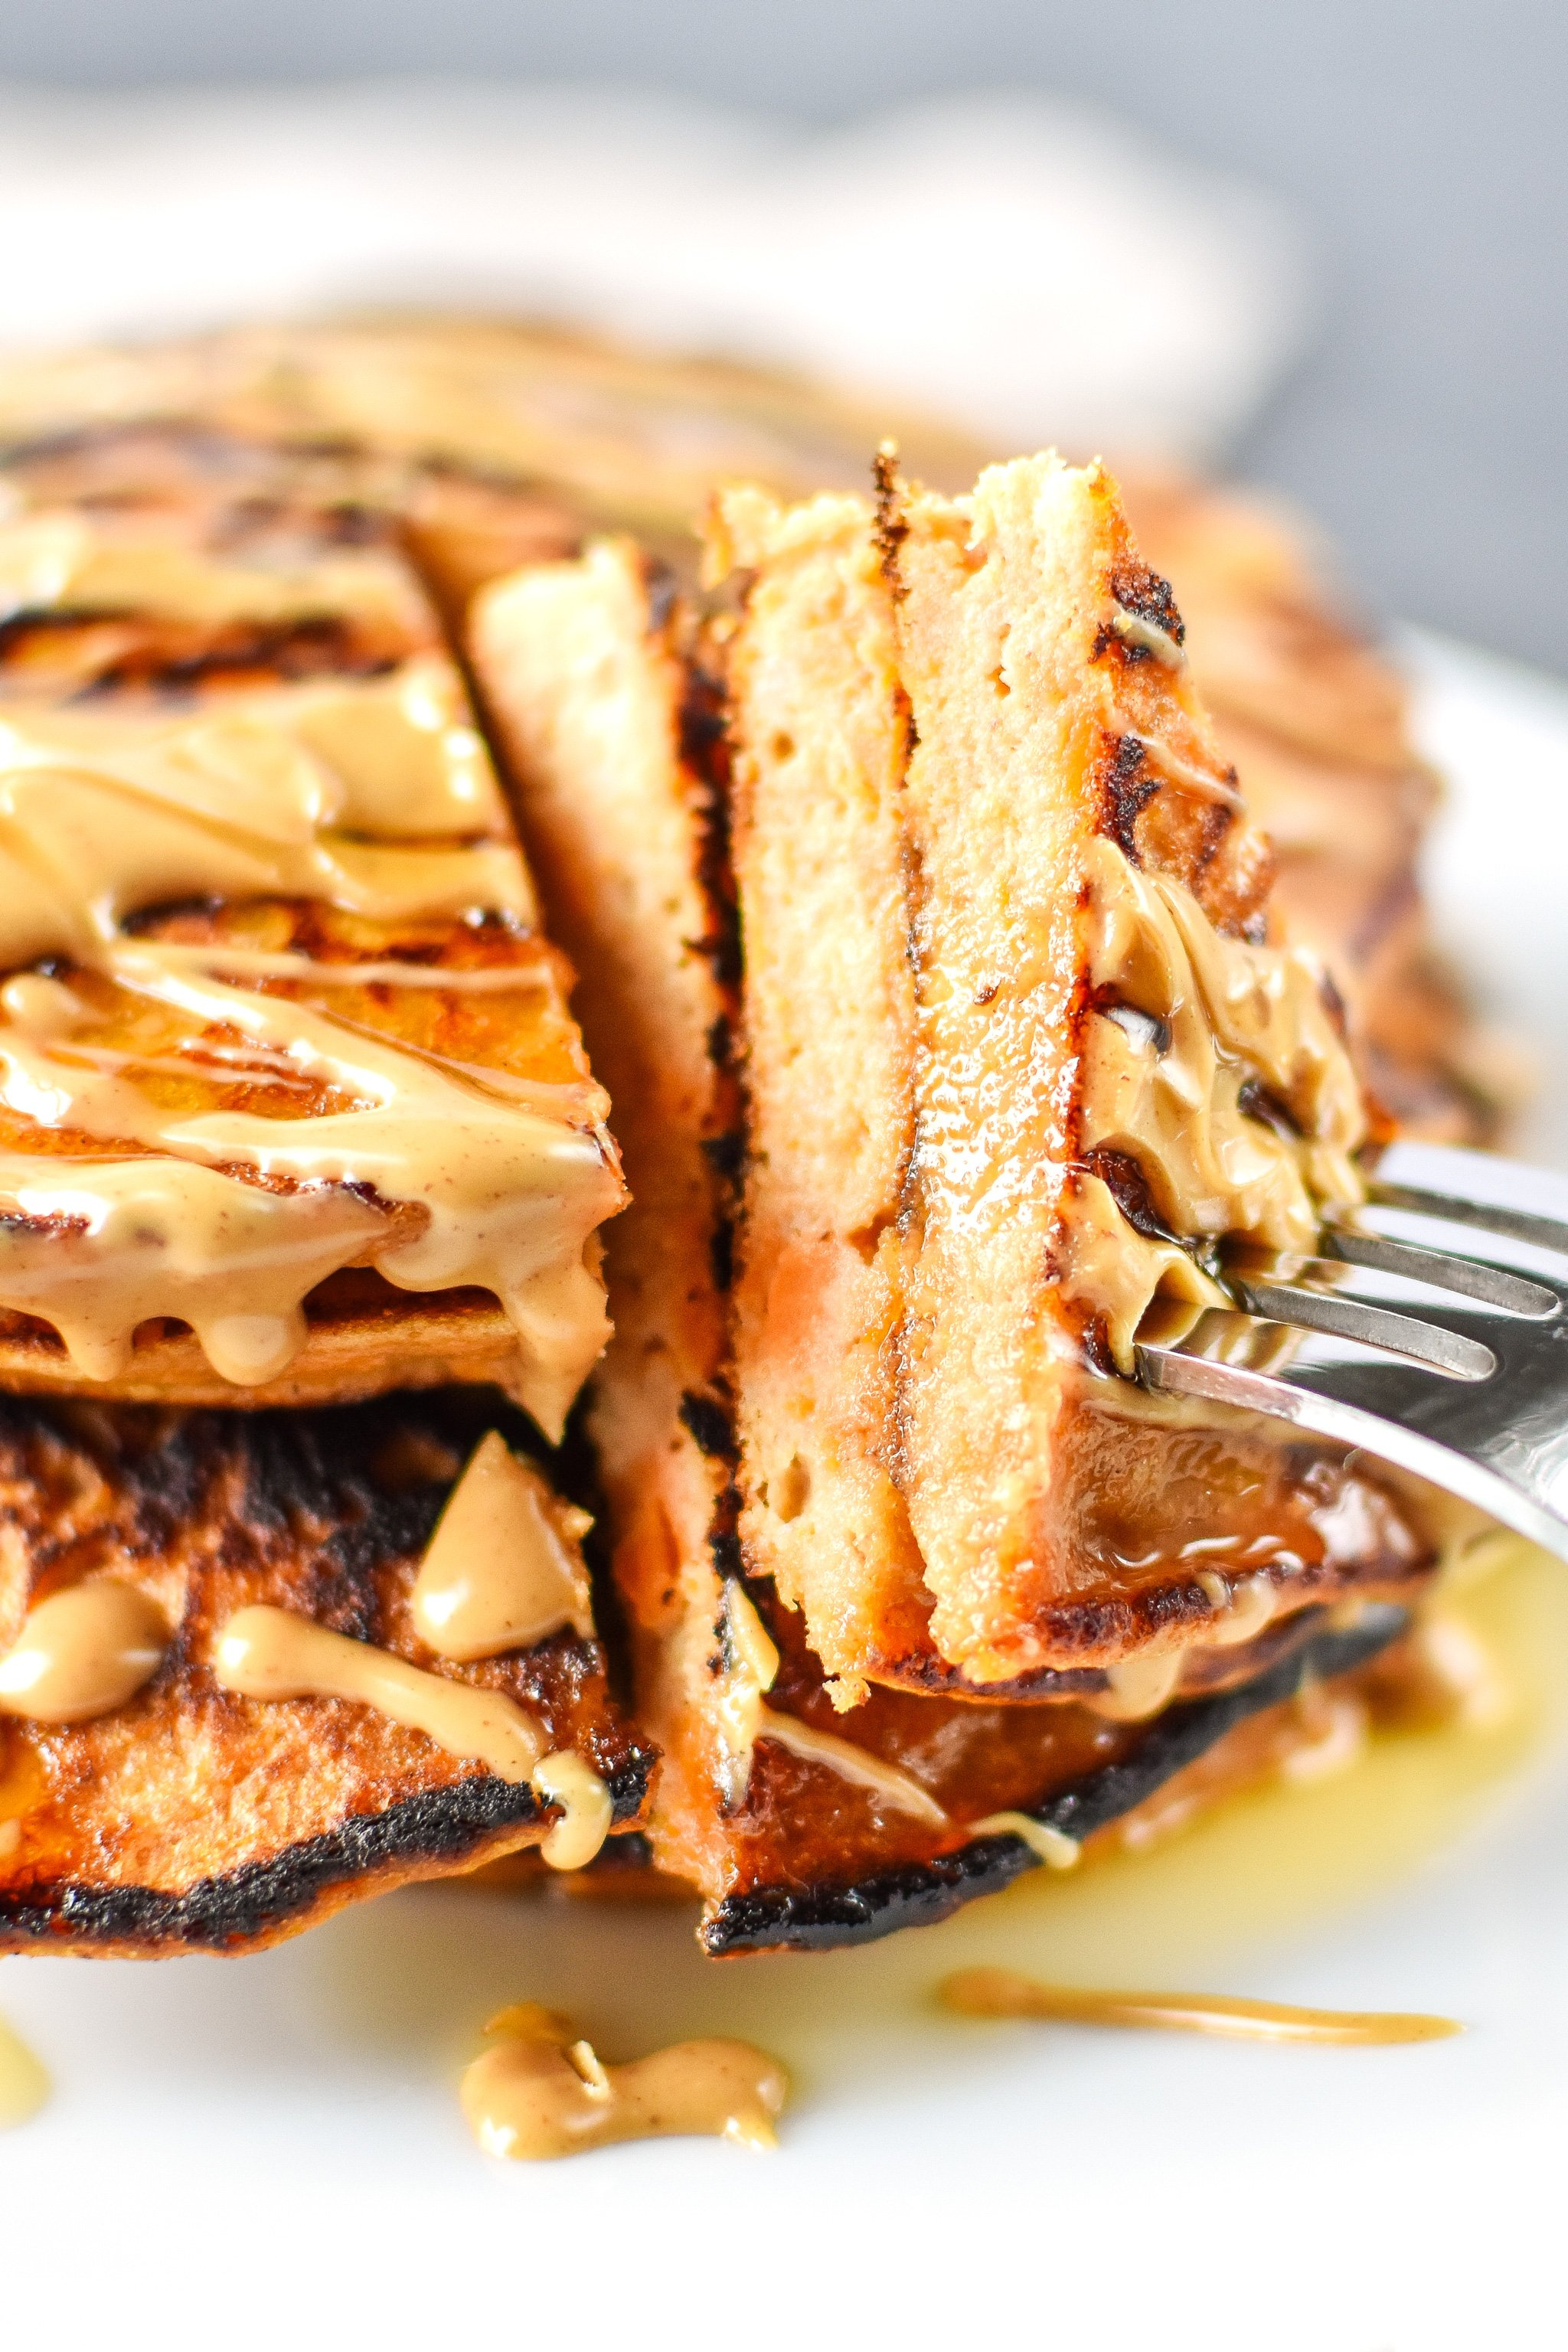 5-Ingredient Sweet Potato Banana Pancakes - Banana, sweet potato, nut butter, eggs and cinnamon are all you need to make these simple pancakes happen! - ProjectMealPlan.com